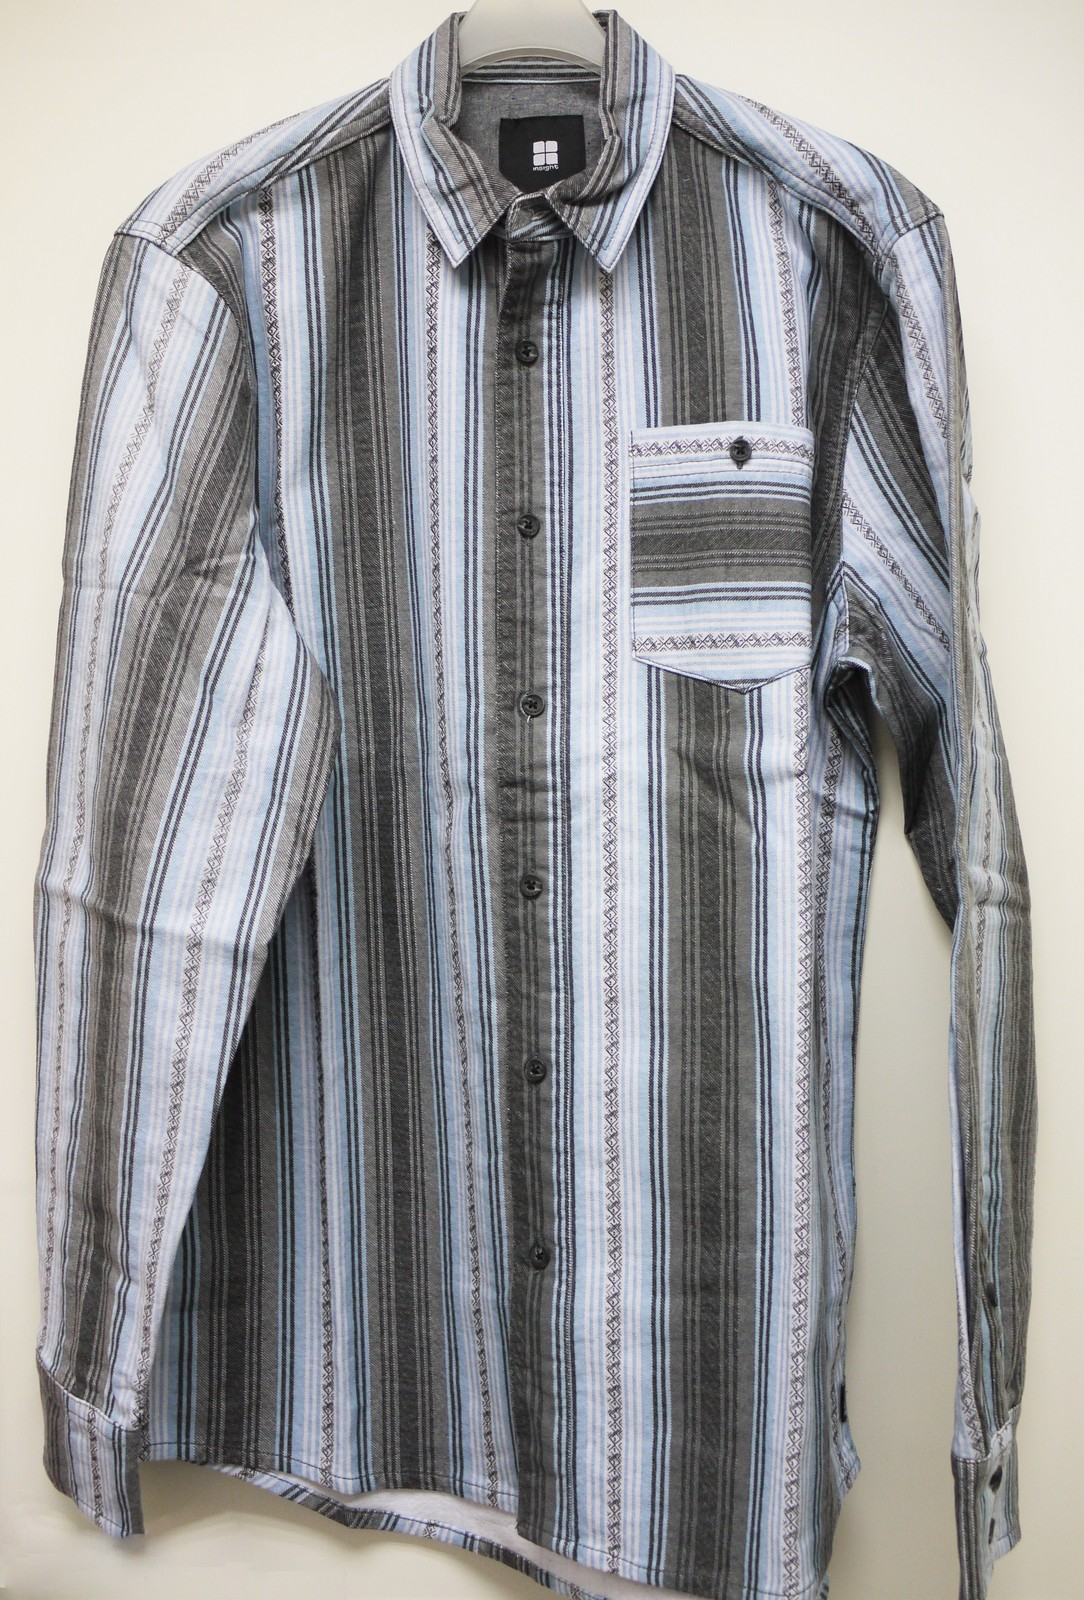 I5SSBEMM47 insight Outfit Blue Serape Strip Long Shirt Medium Size for Men